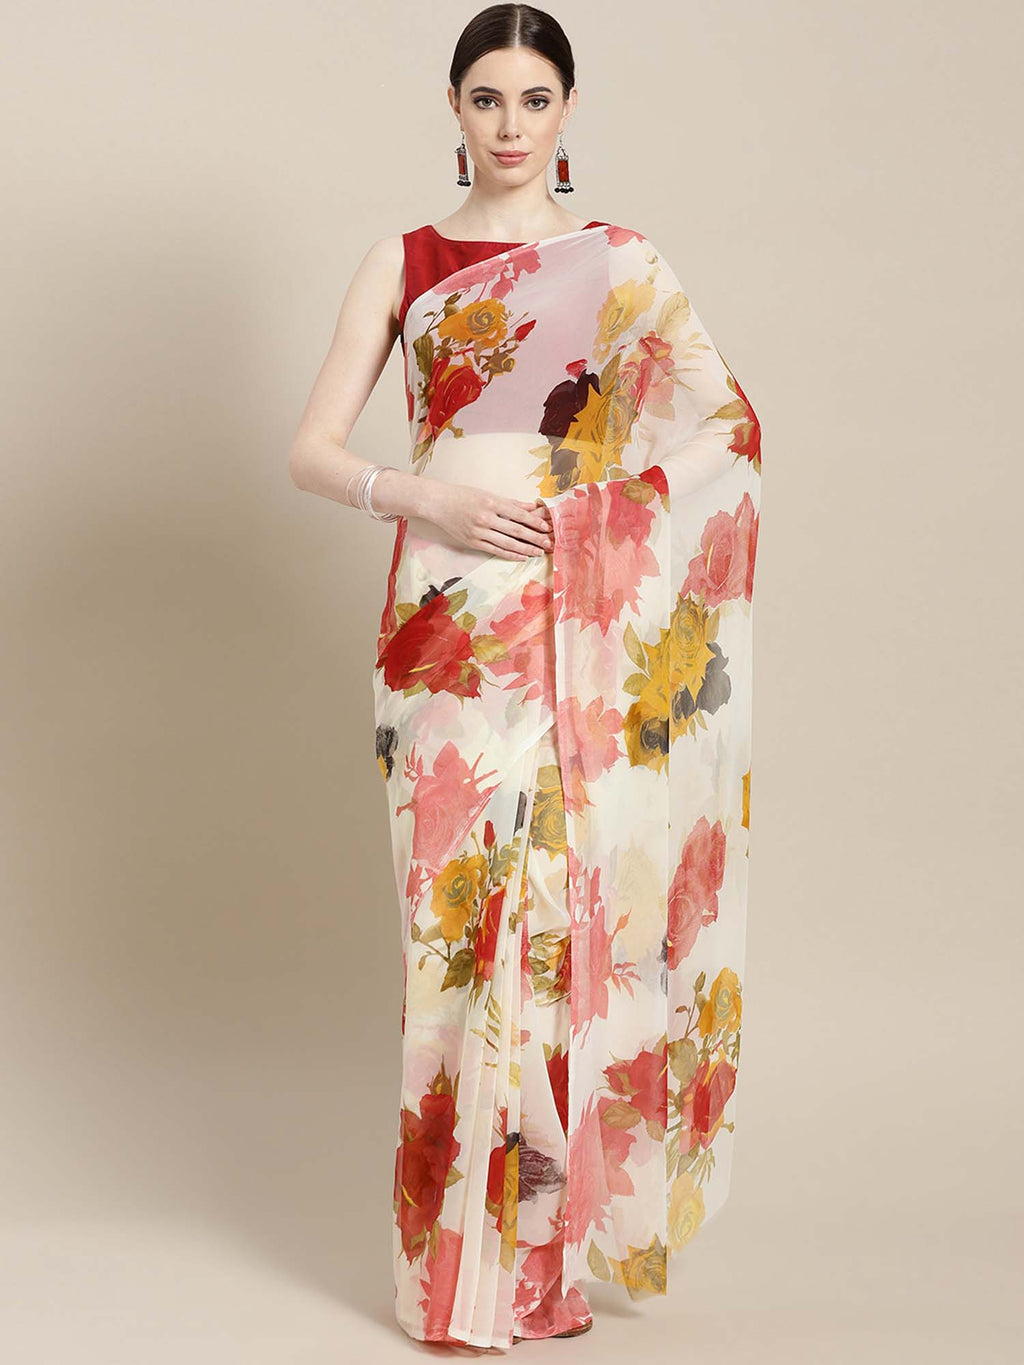 Four Seasons Off-White & Red Printed Georgette Saree - Riviera Closet